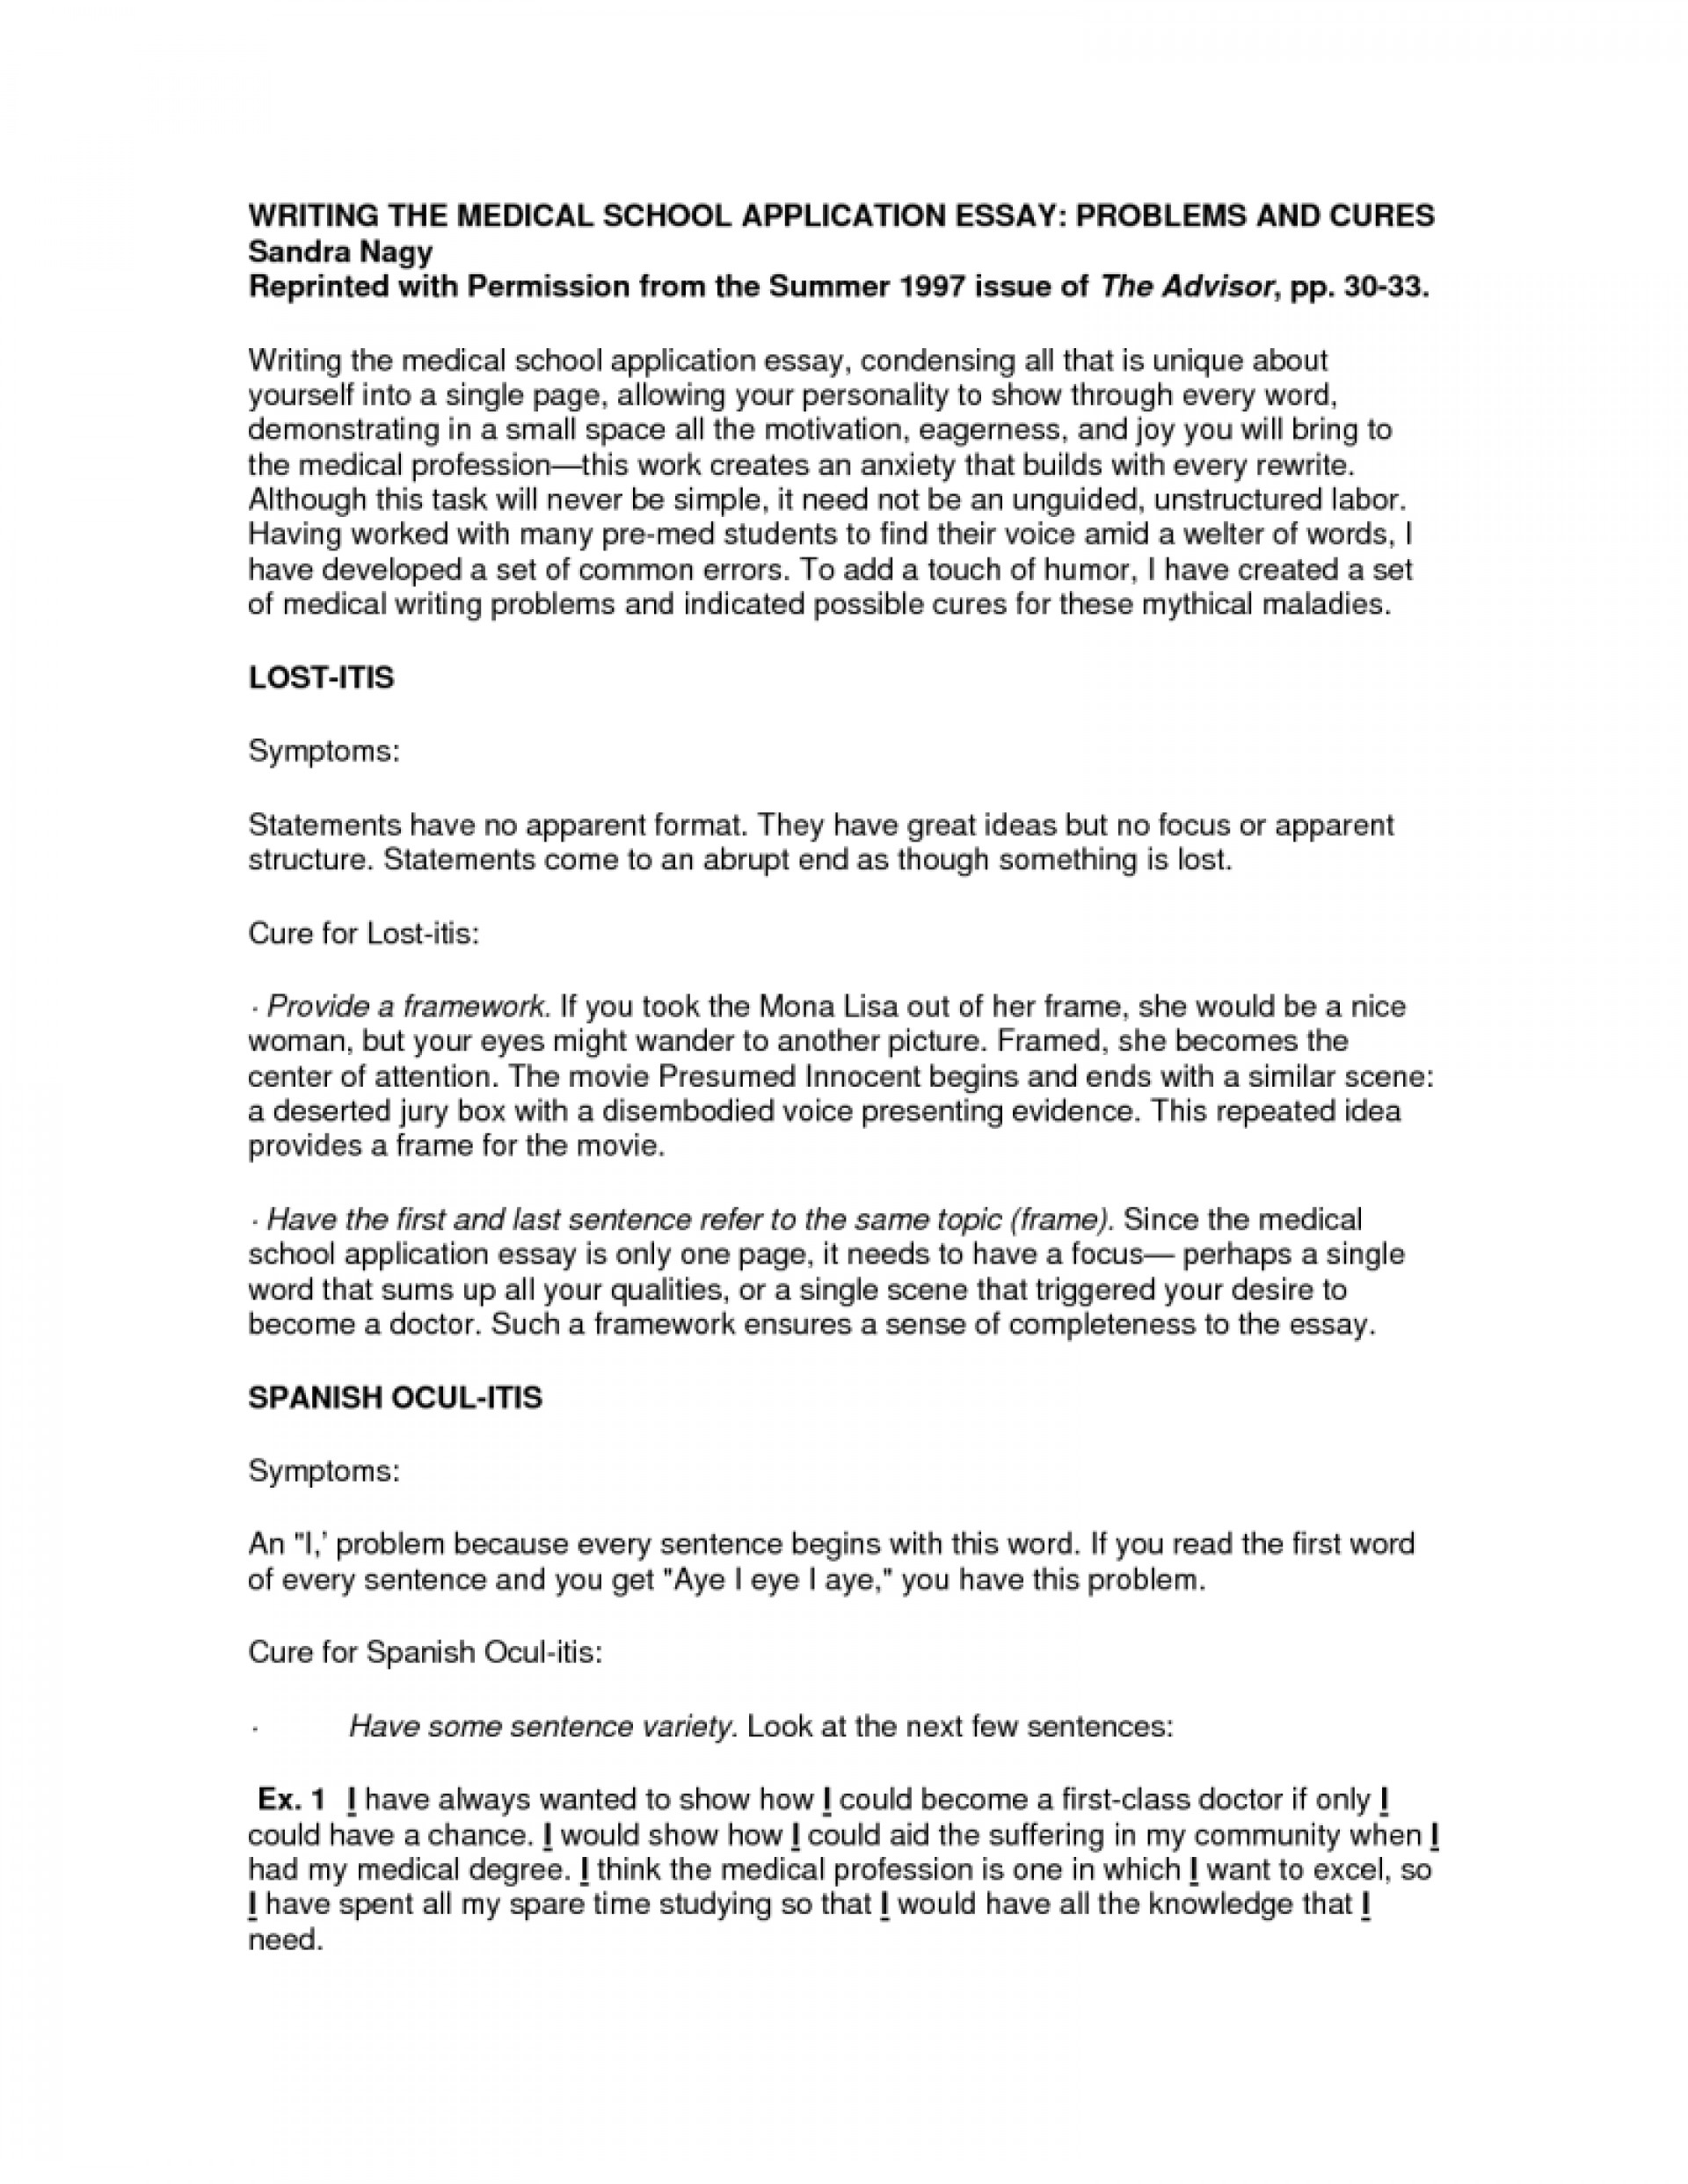 020 Examples Of Good College Application Essays On Compare And Contrast This I Believe Essay Template Qdbqo Topics Samples Stupendous Personal 1920